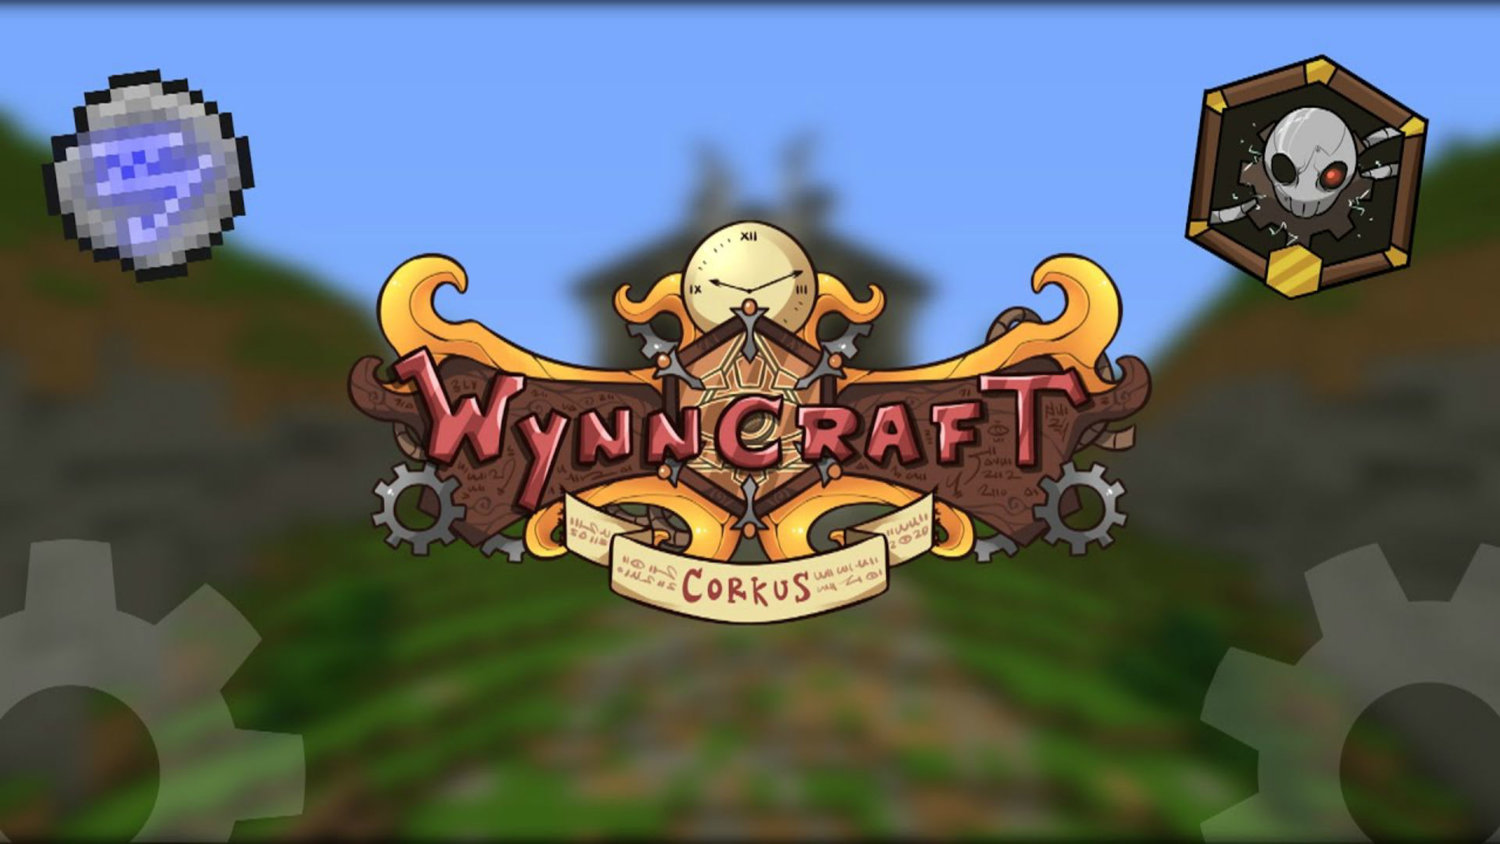 wynncraft brings mmorpg to minecraft gametyrant